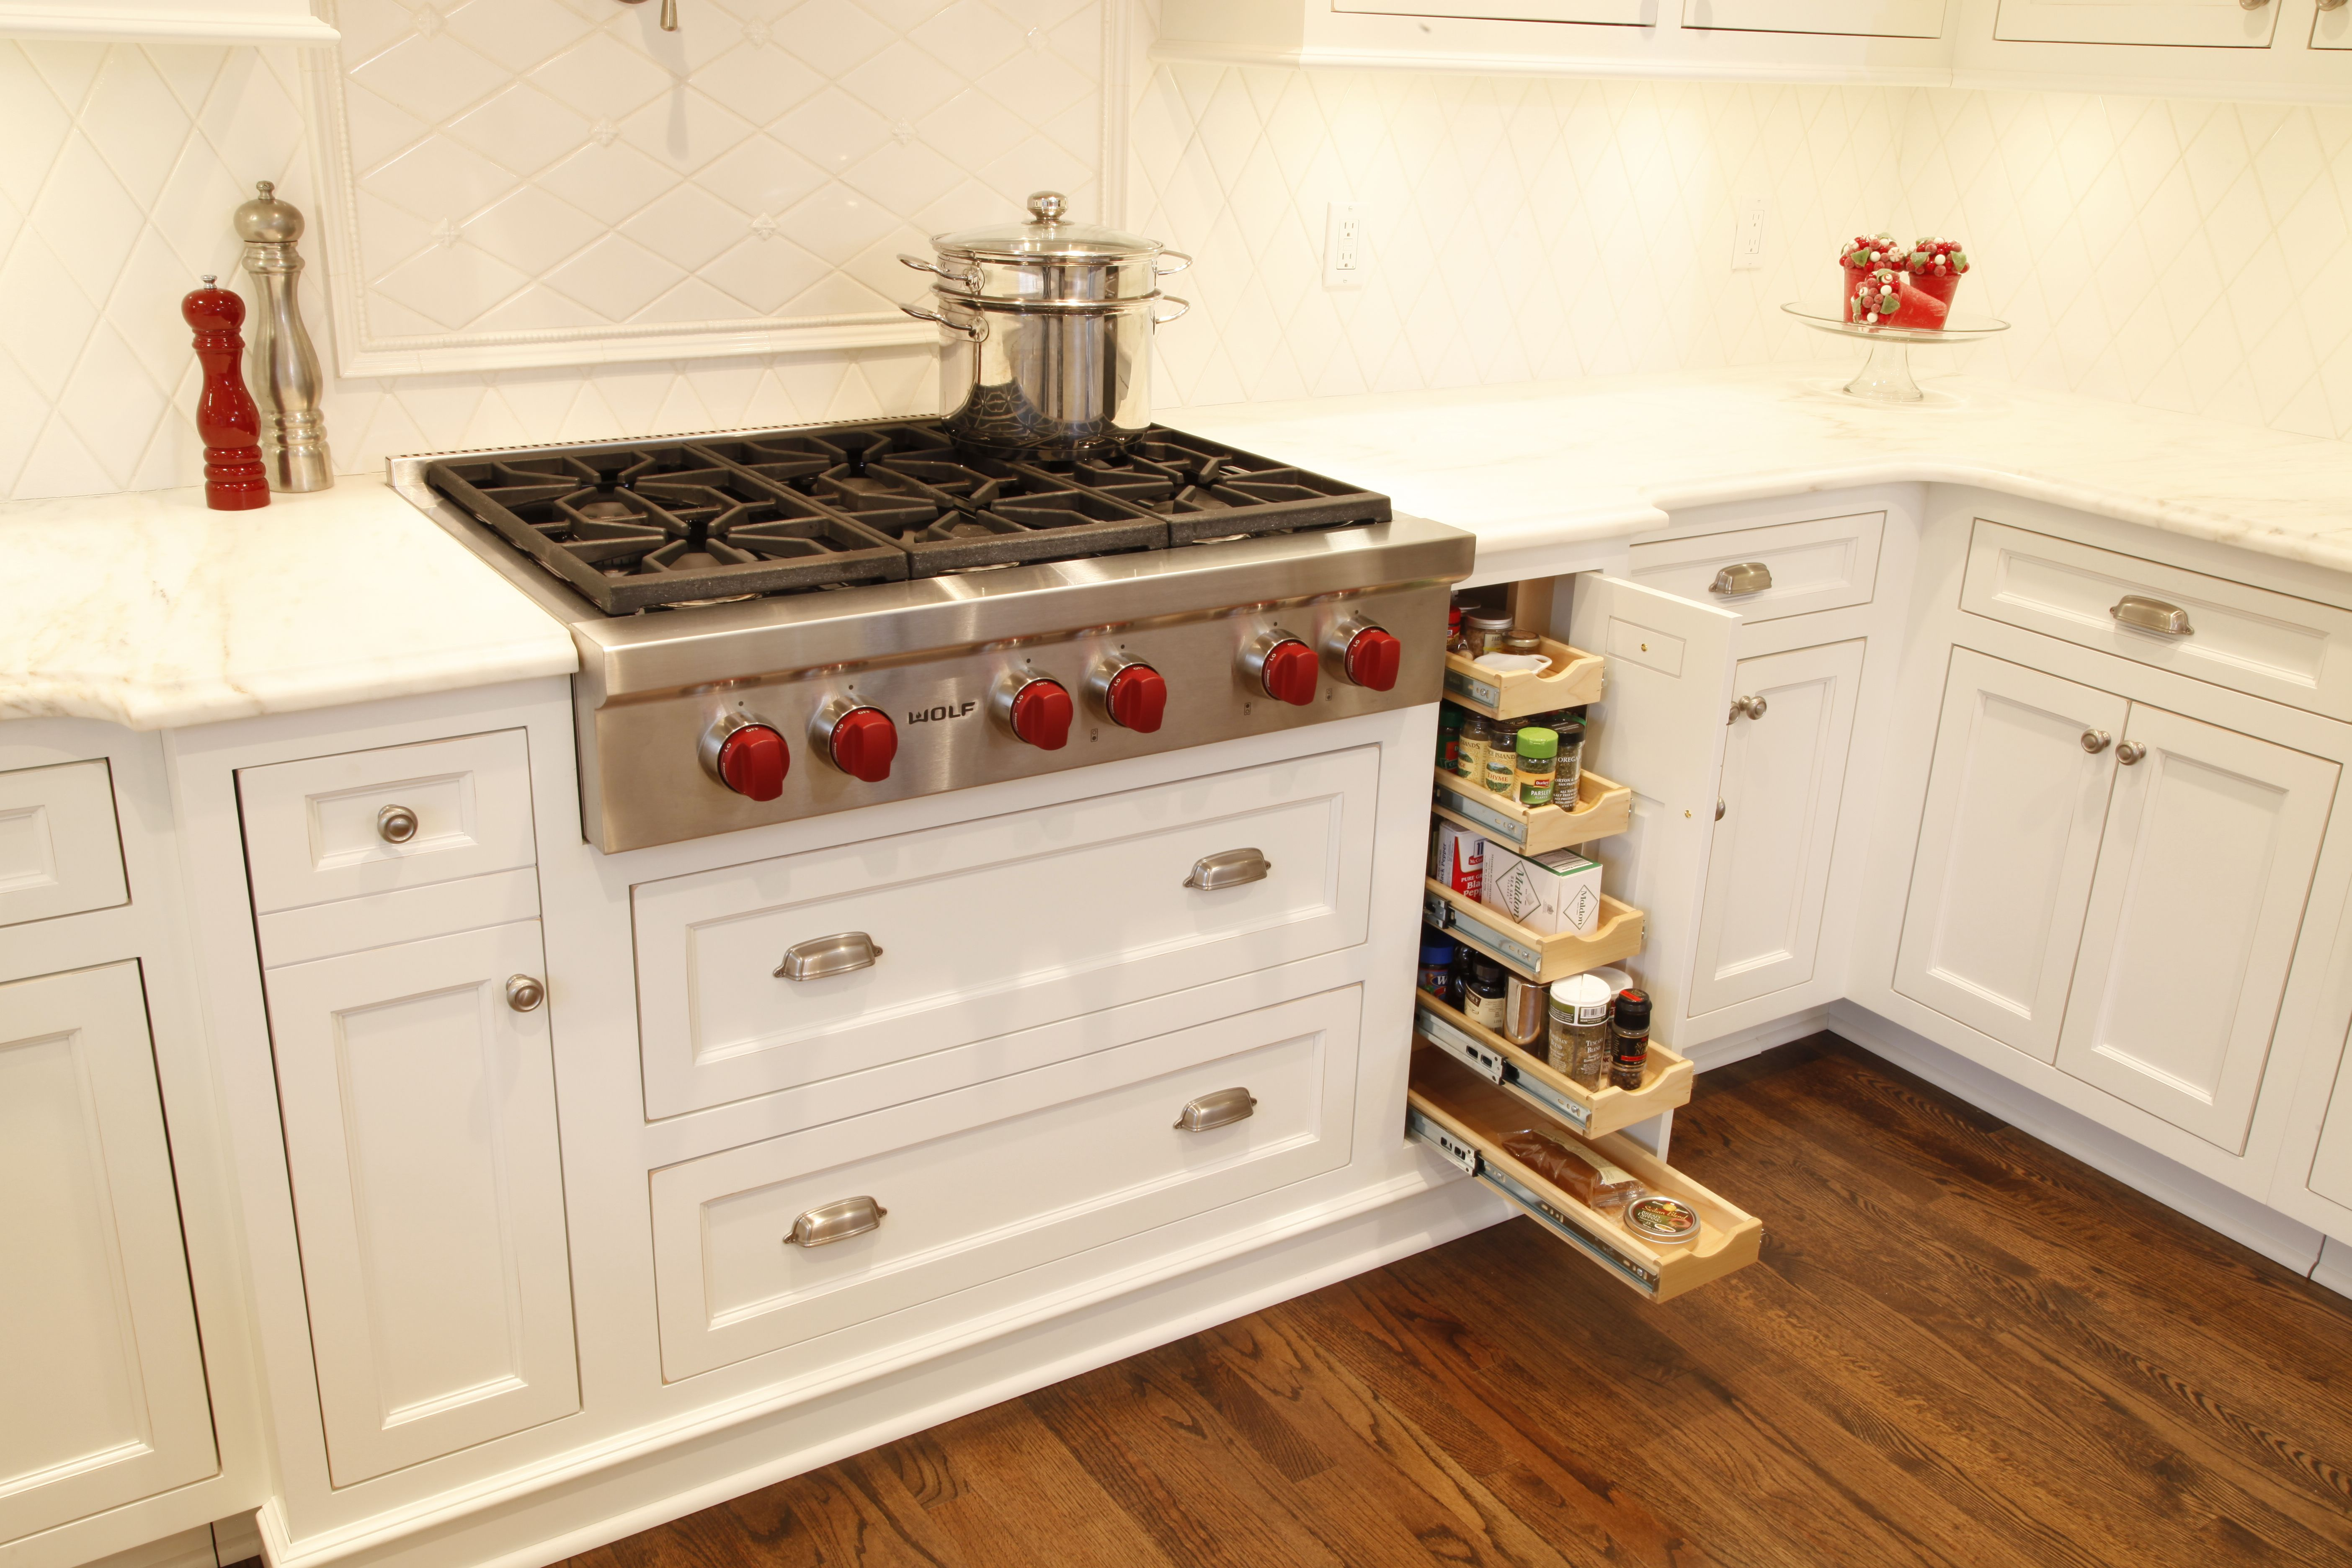 The Amazing Space Saving Modular Kitchen Cabinets - Home ...